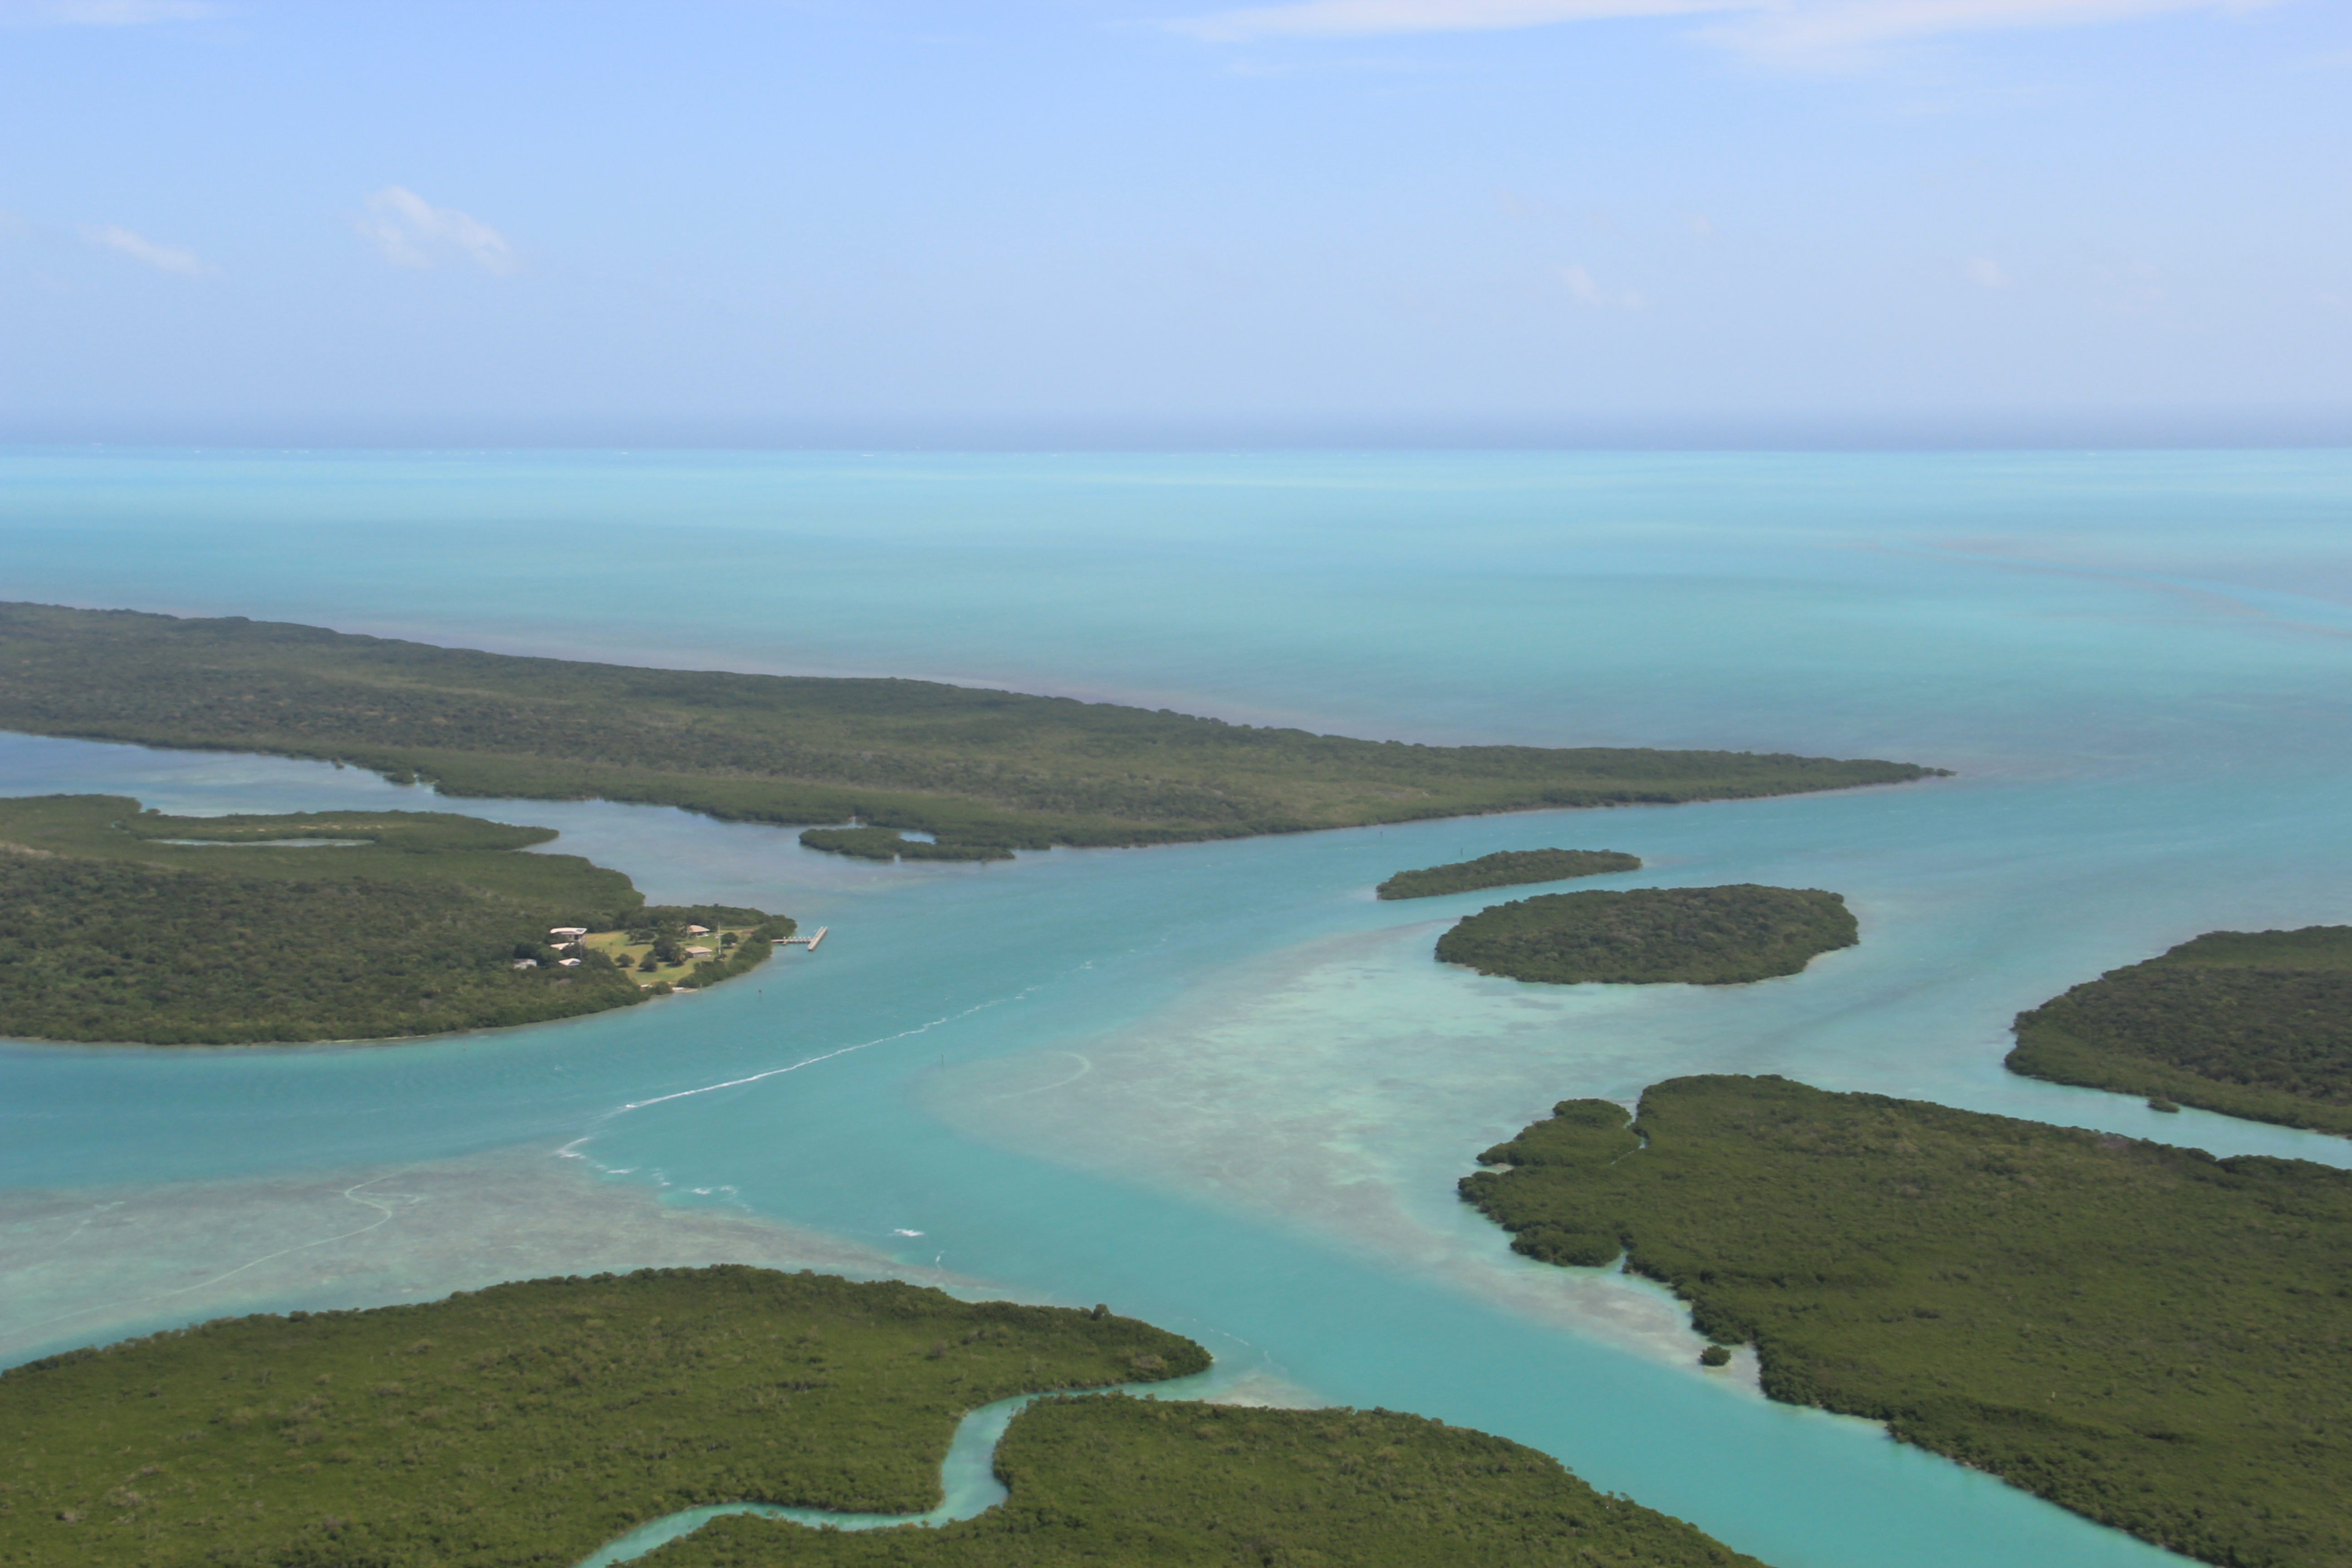 Adams Key aerial view